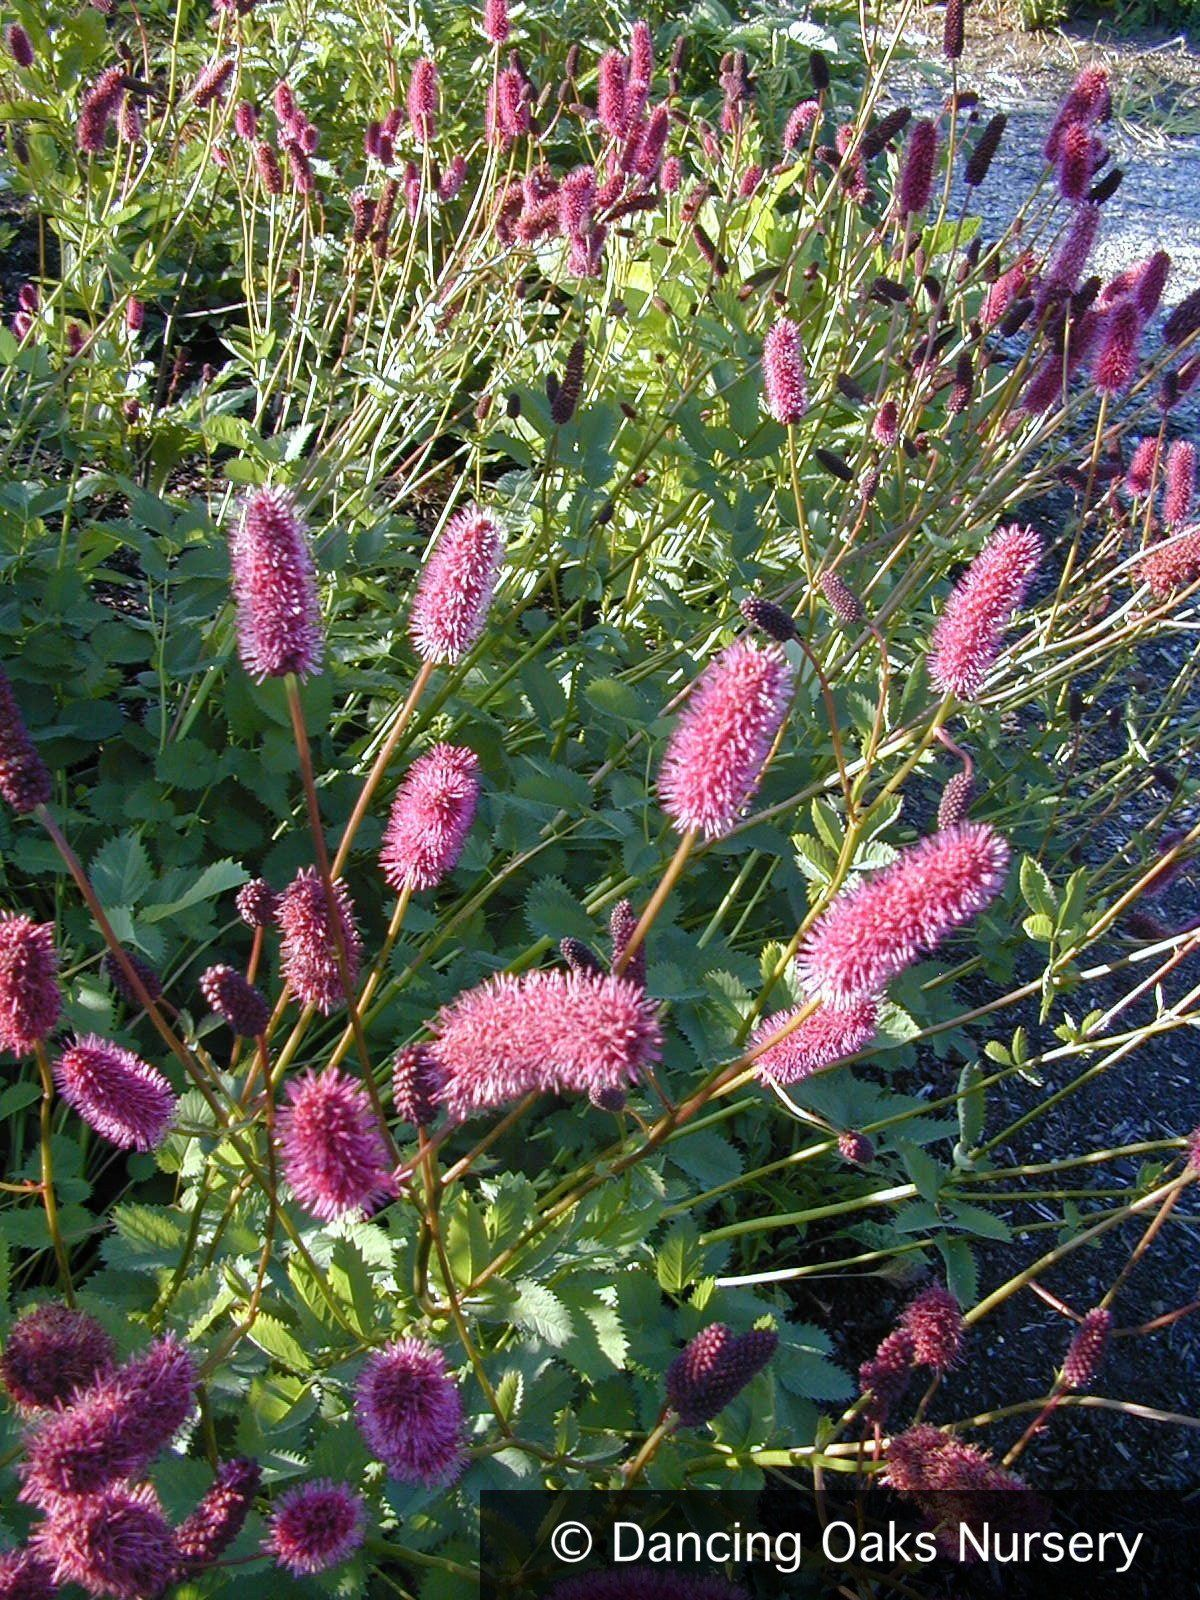 The unique red brush plant - what it treats and how to apply